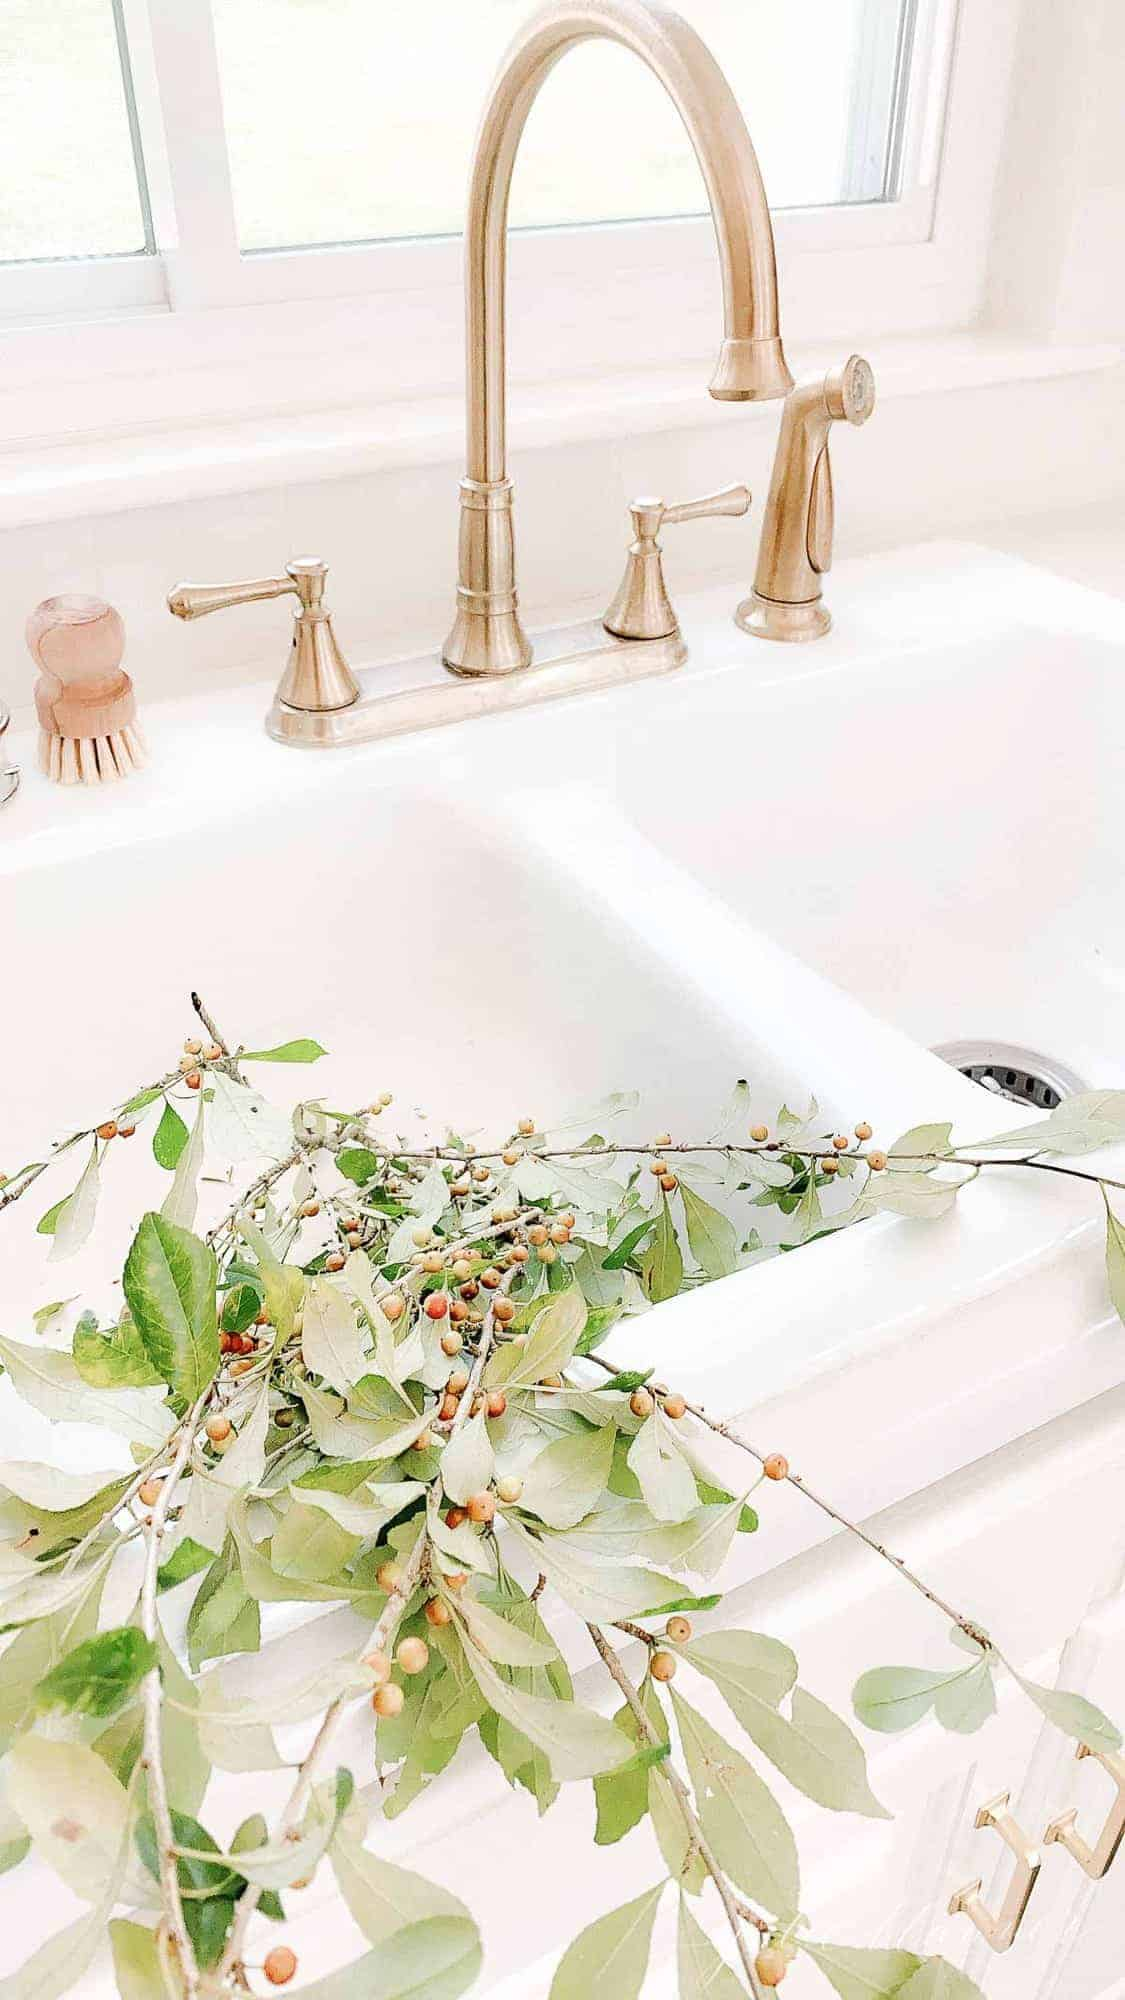 sink with brass faucet filled with fall branches